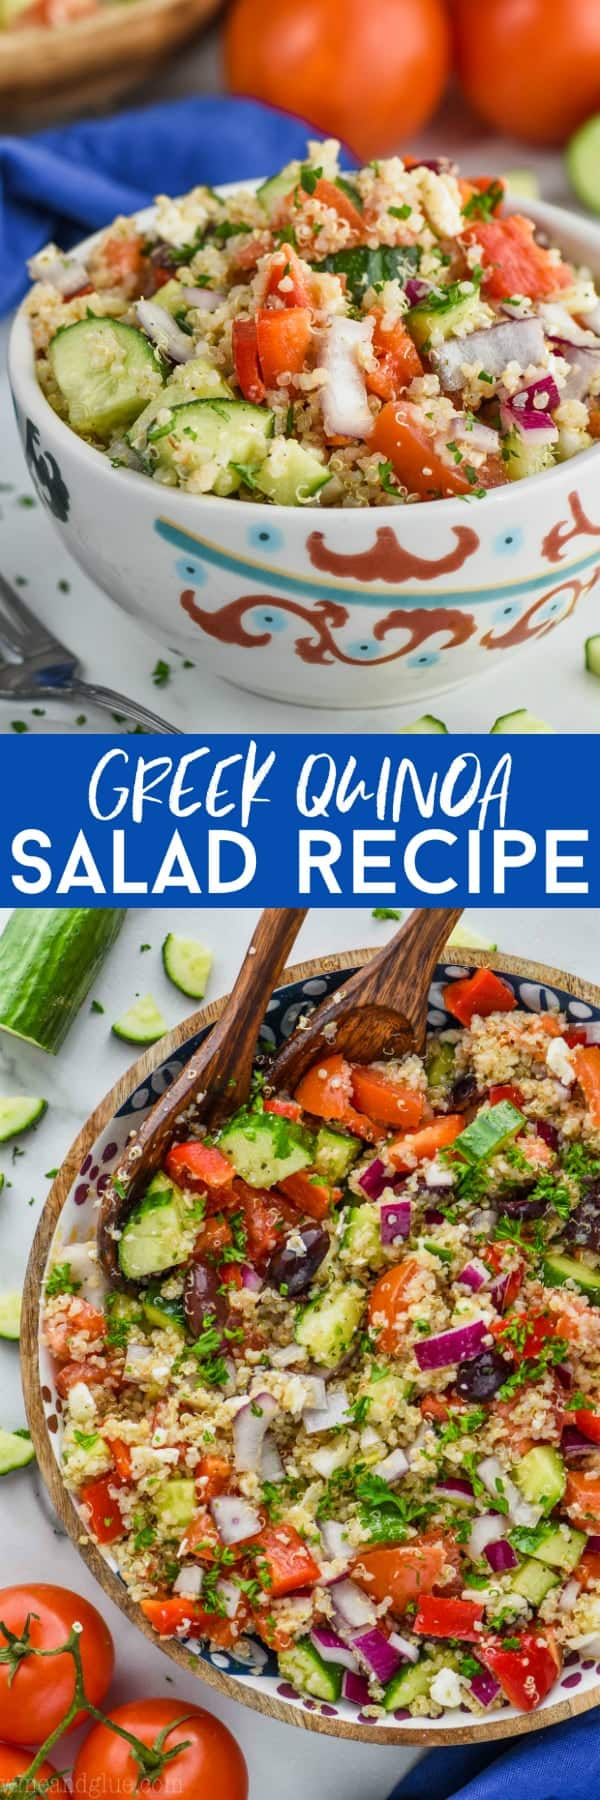 collage of greek quinoa salad recipe